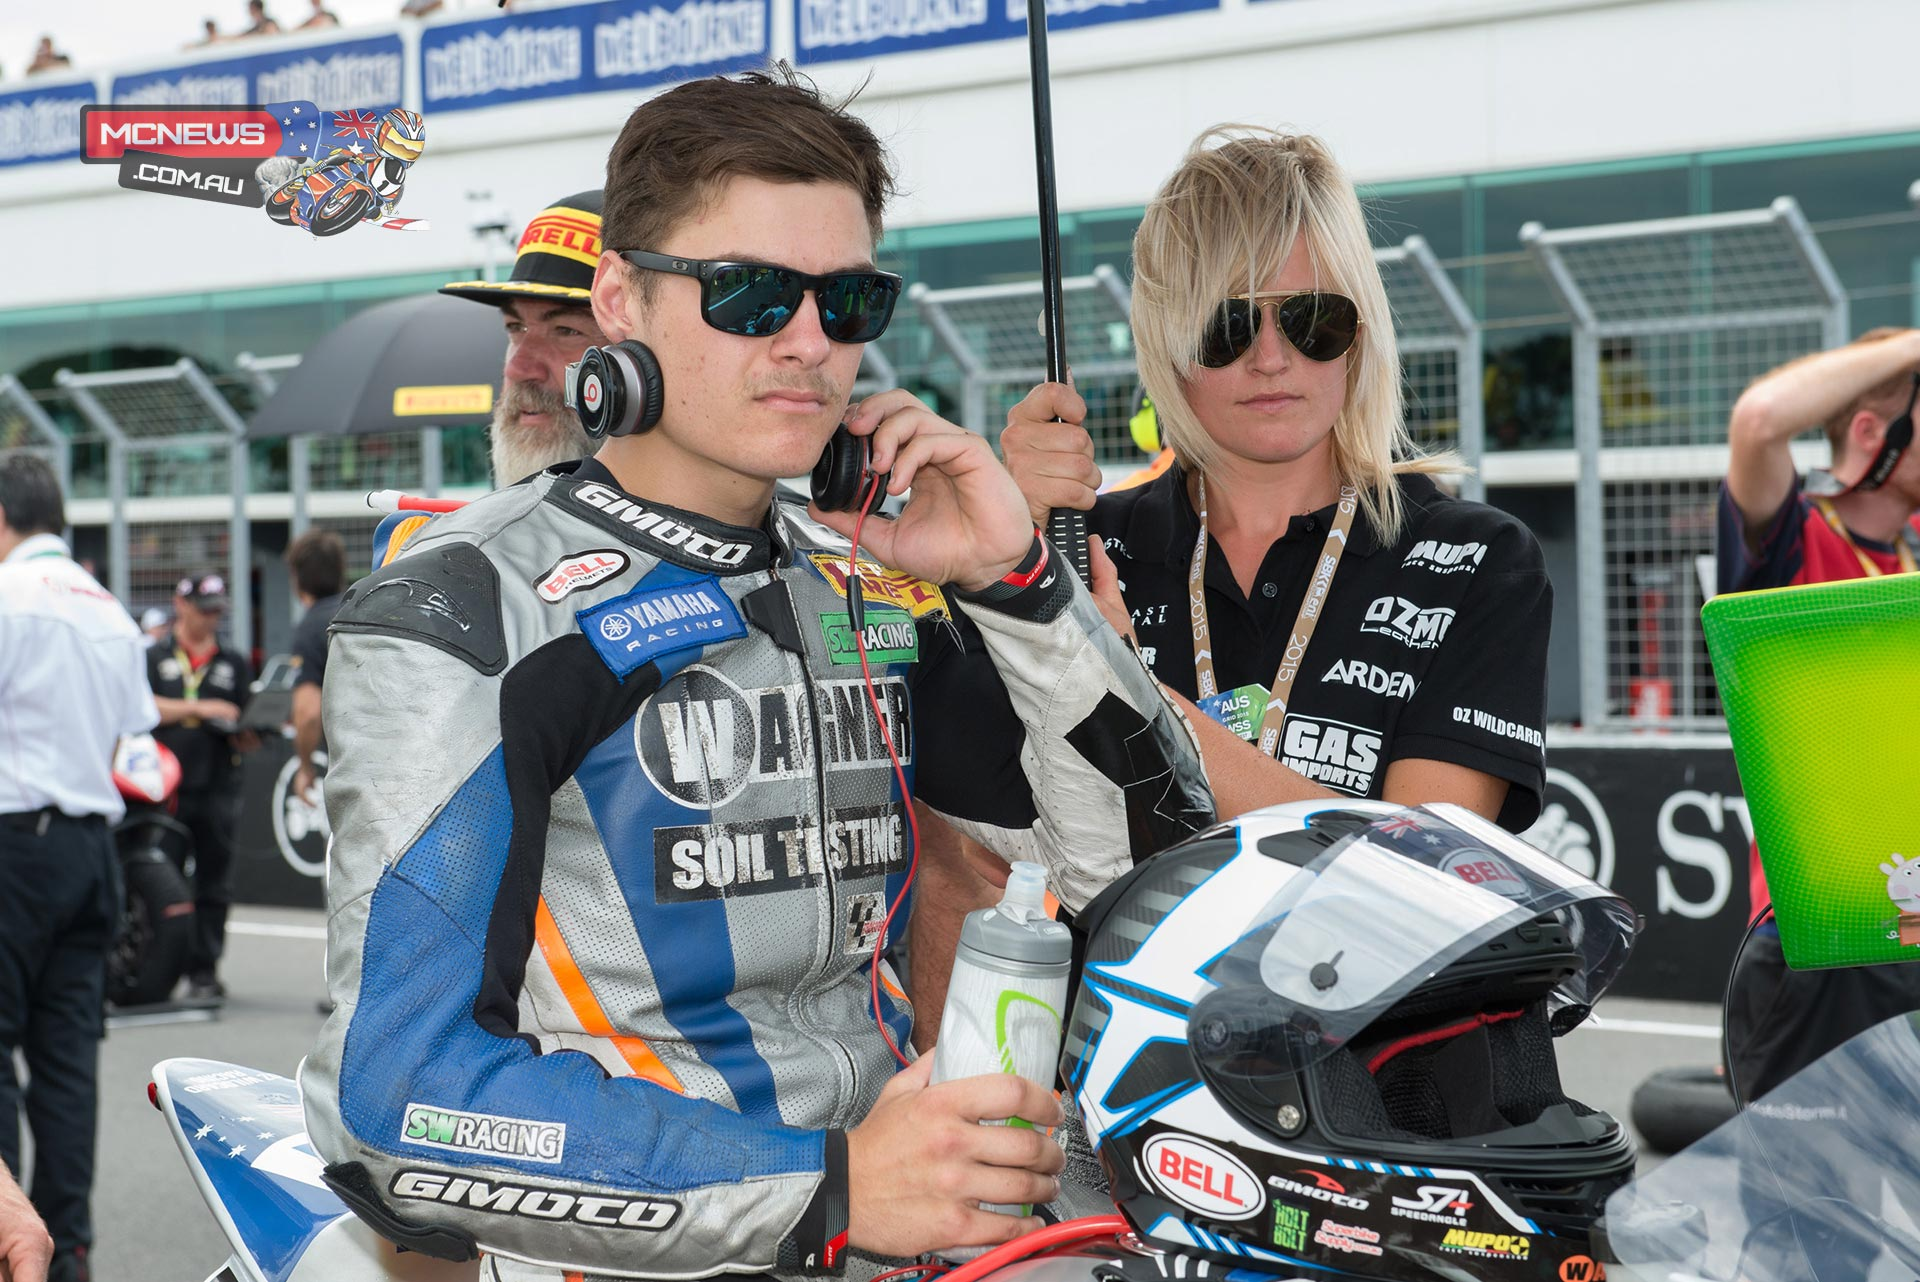 Aiden Wagner turns down ASC SBK ride with Team Honda in favour of World Supersport